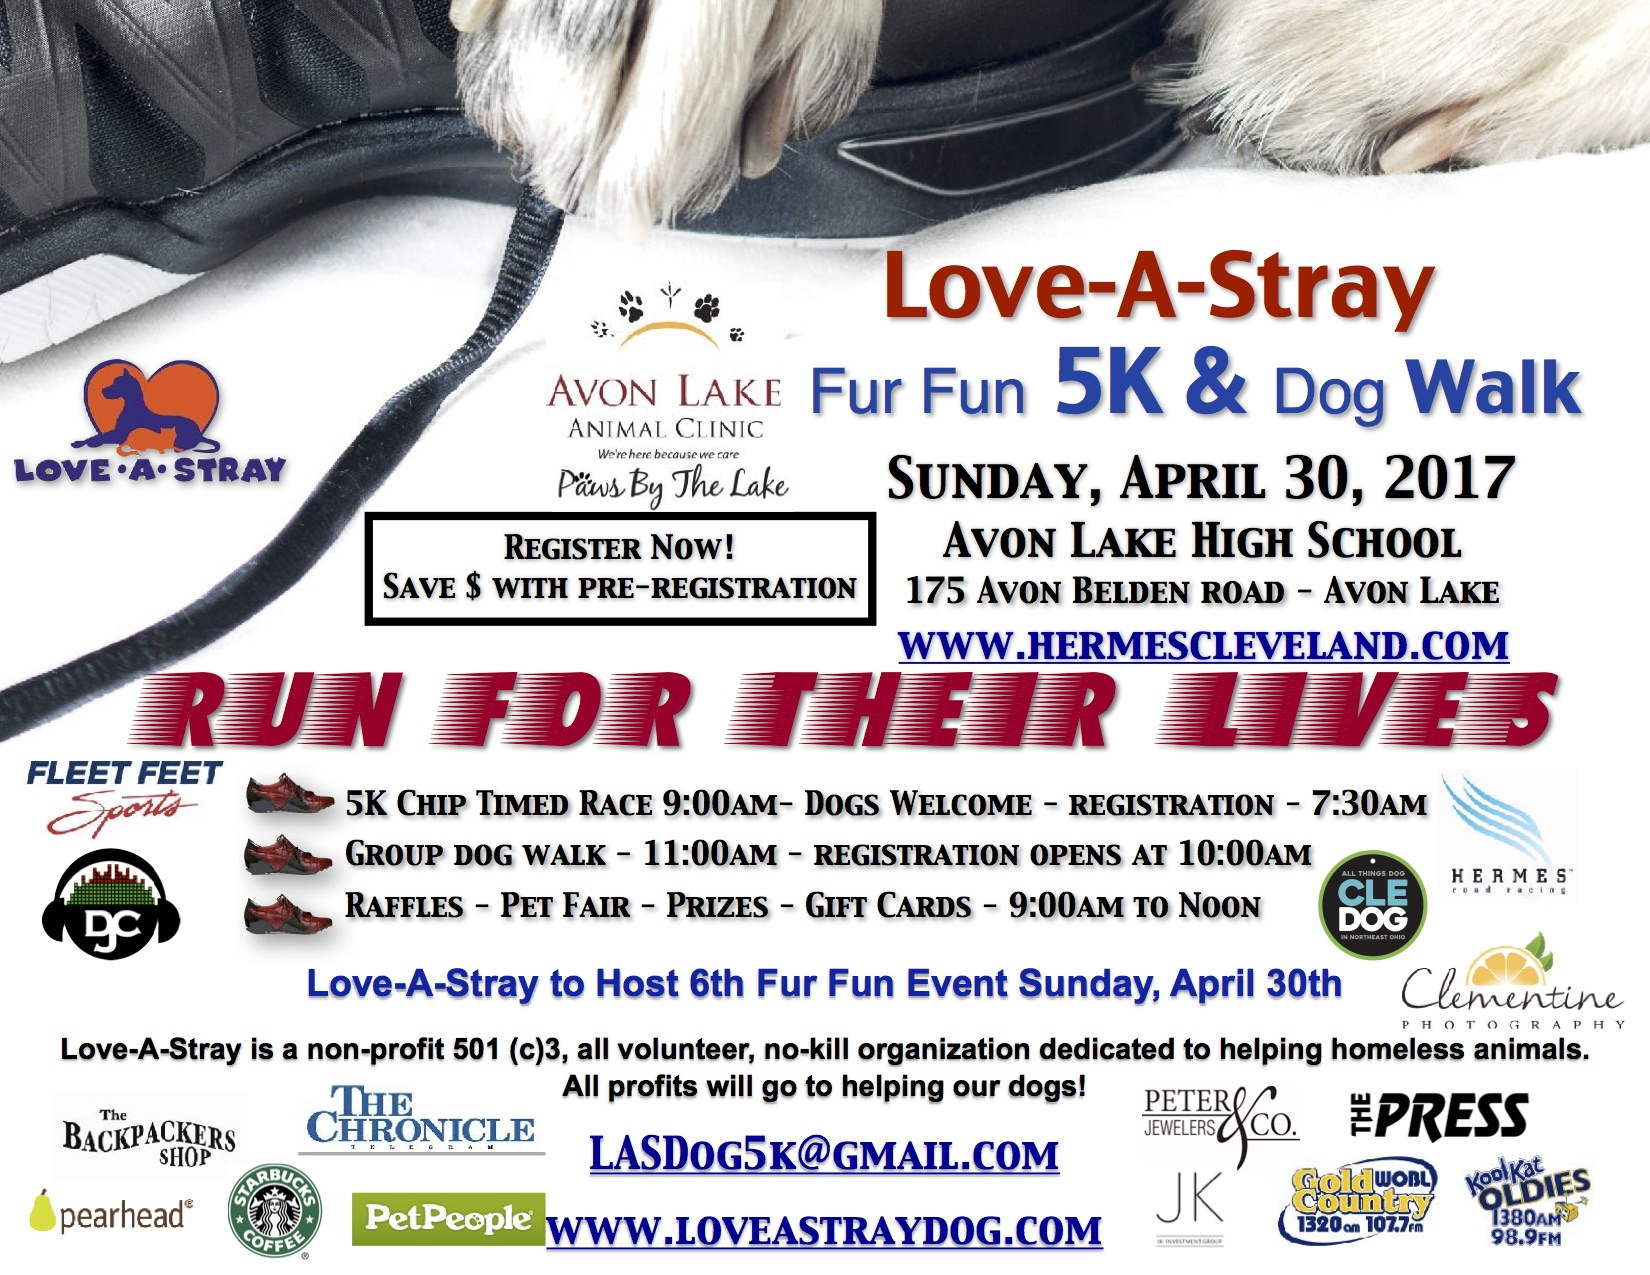 2017 Fur Fun 5K & Dog Walk